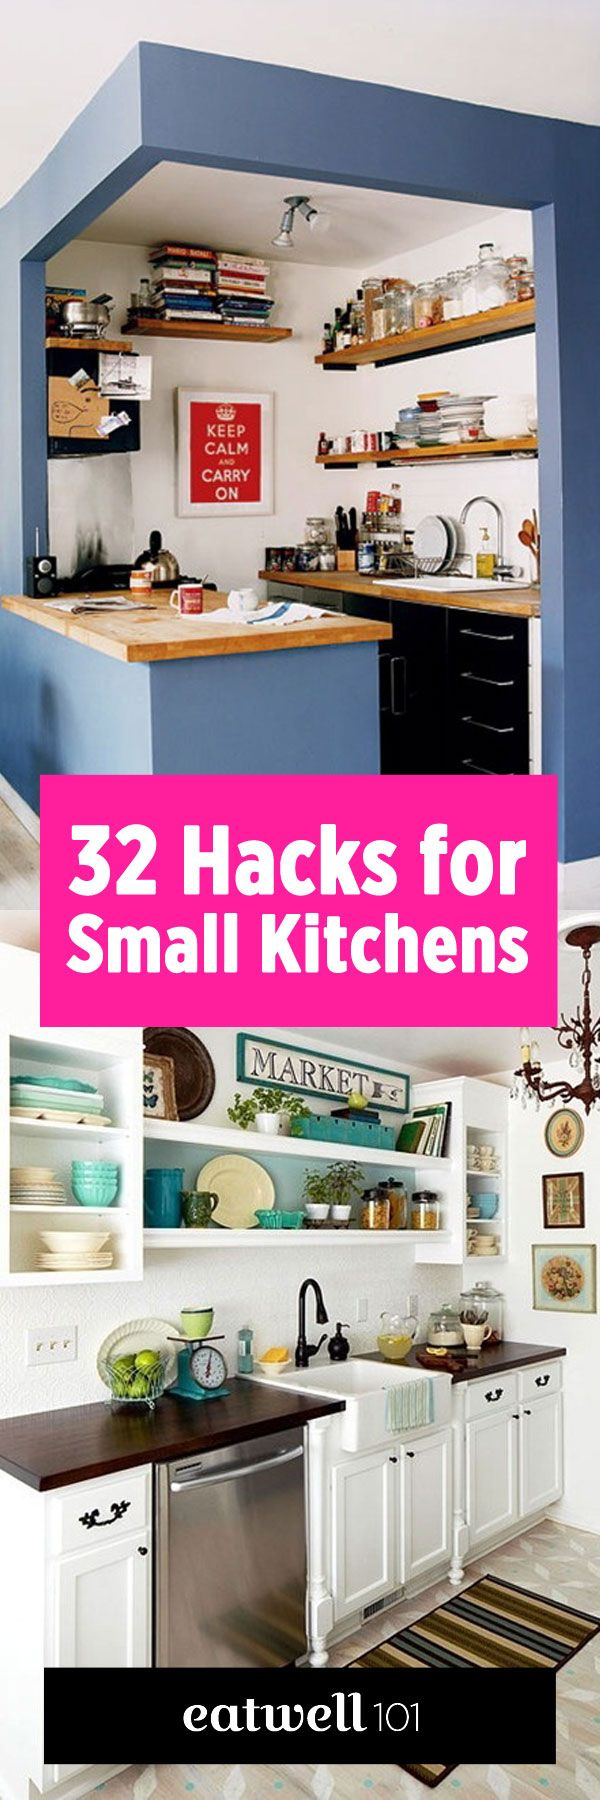 Best 25 small kitchen diy ideas on pinterest small kitchen organization small kitchen ideas - Small kitchen design pinterest ...